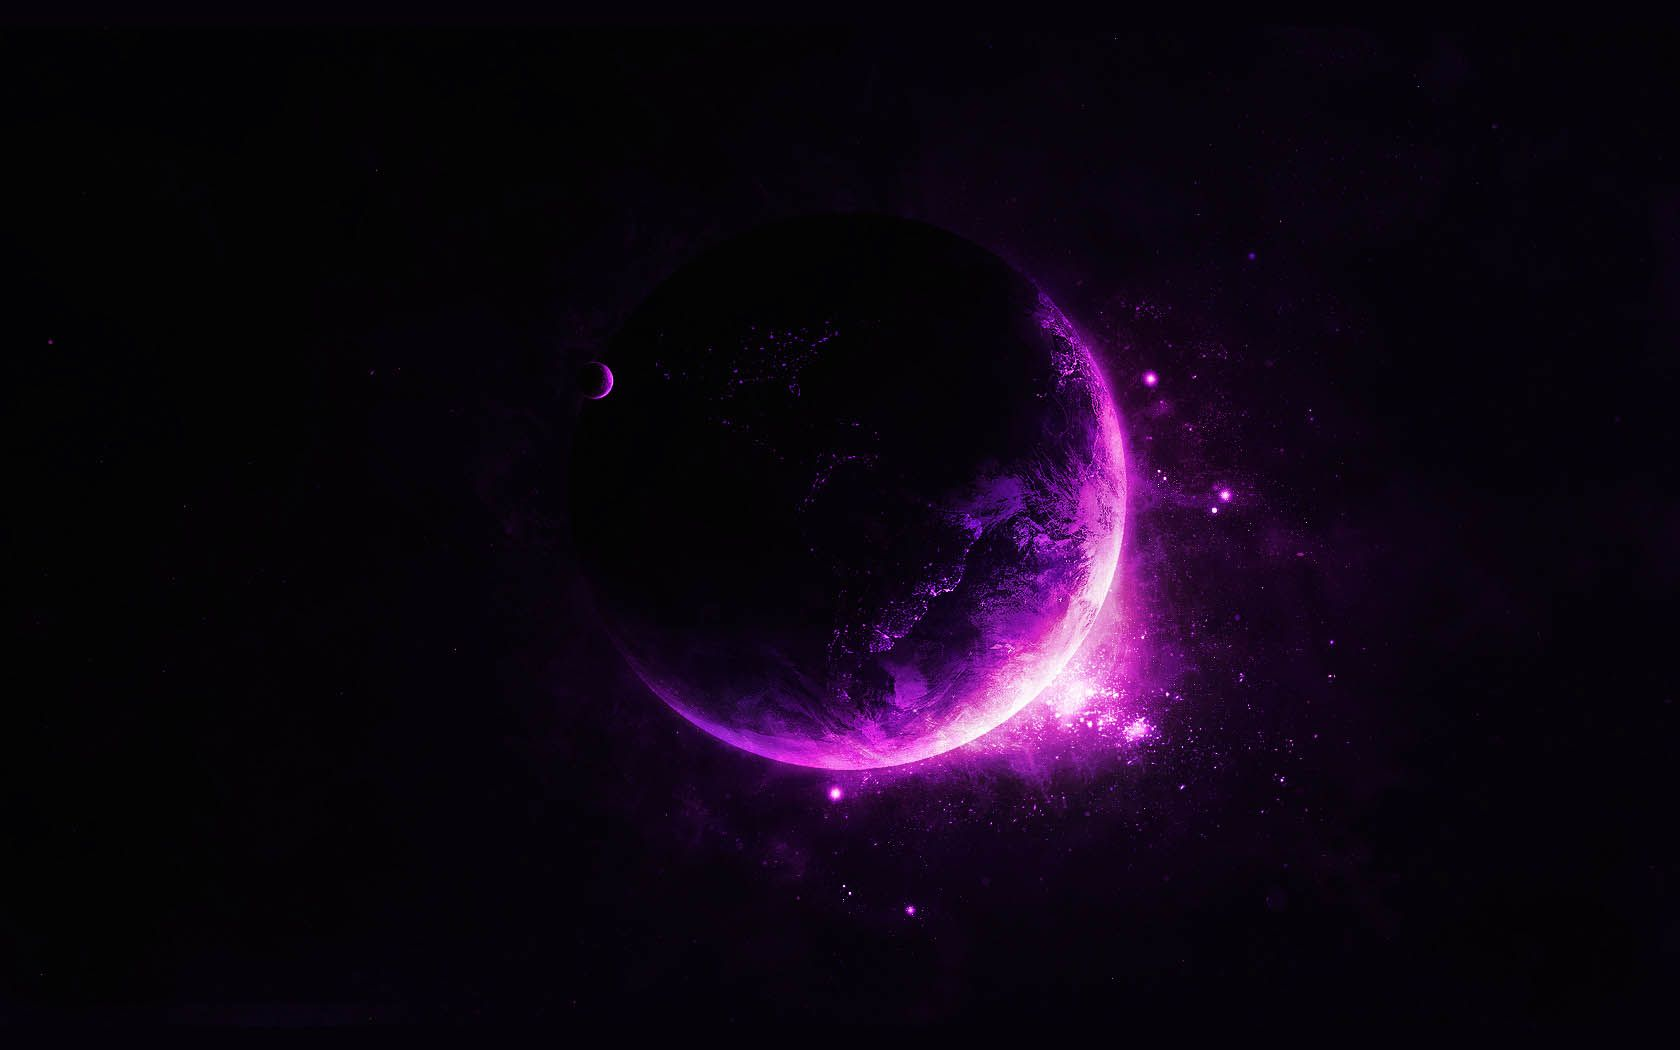 Purple moon wallpaper 3284 hd wallpapers in space - Hd wallpaper for laptop 14 inch ...